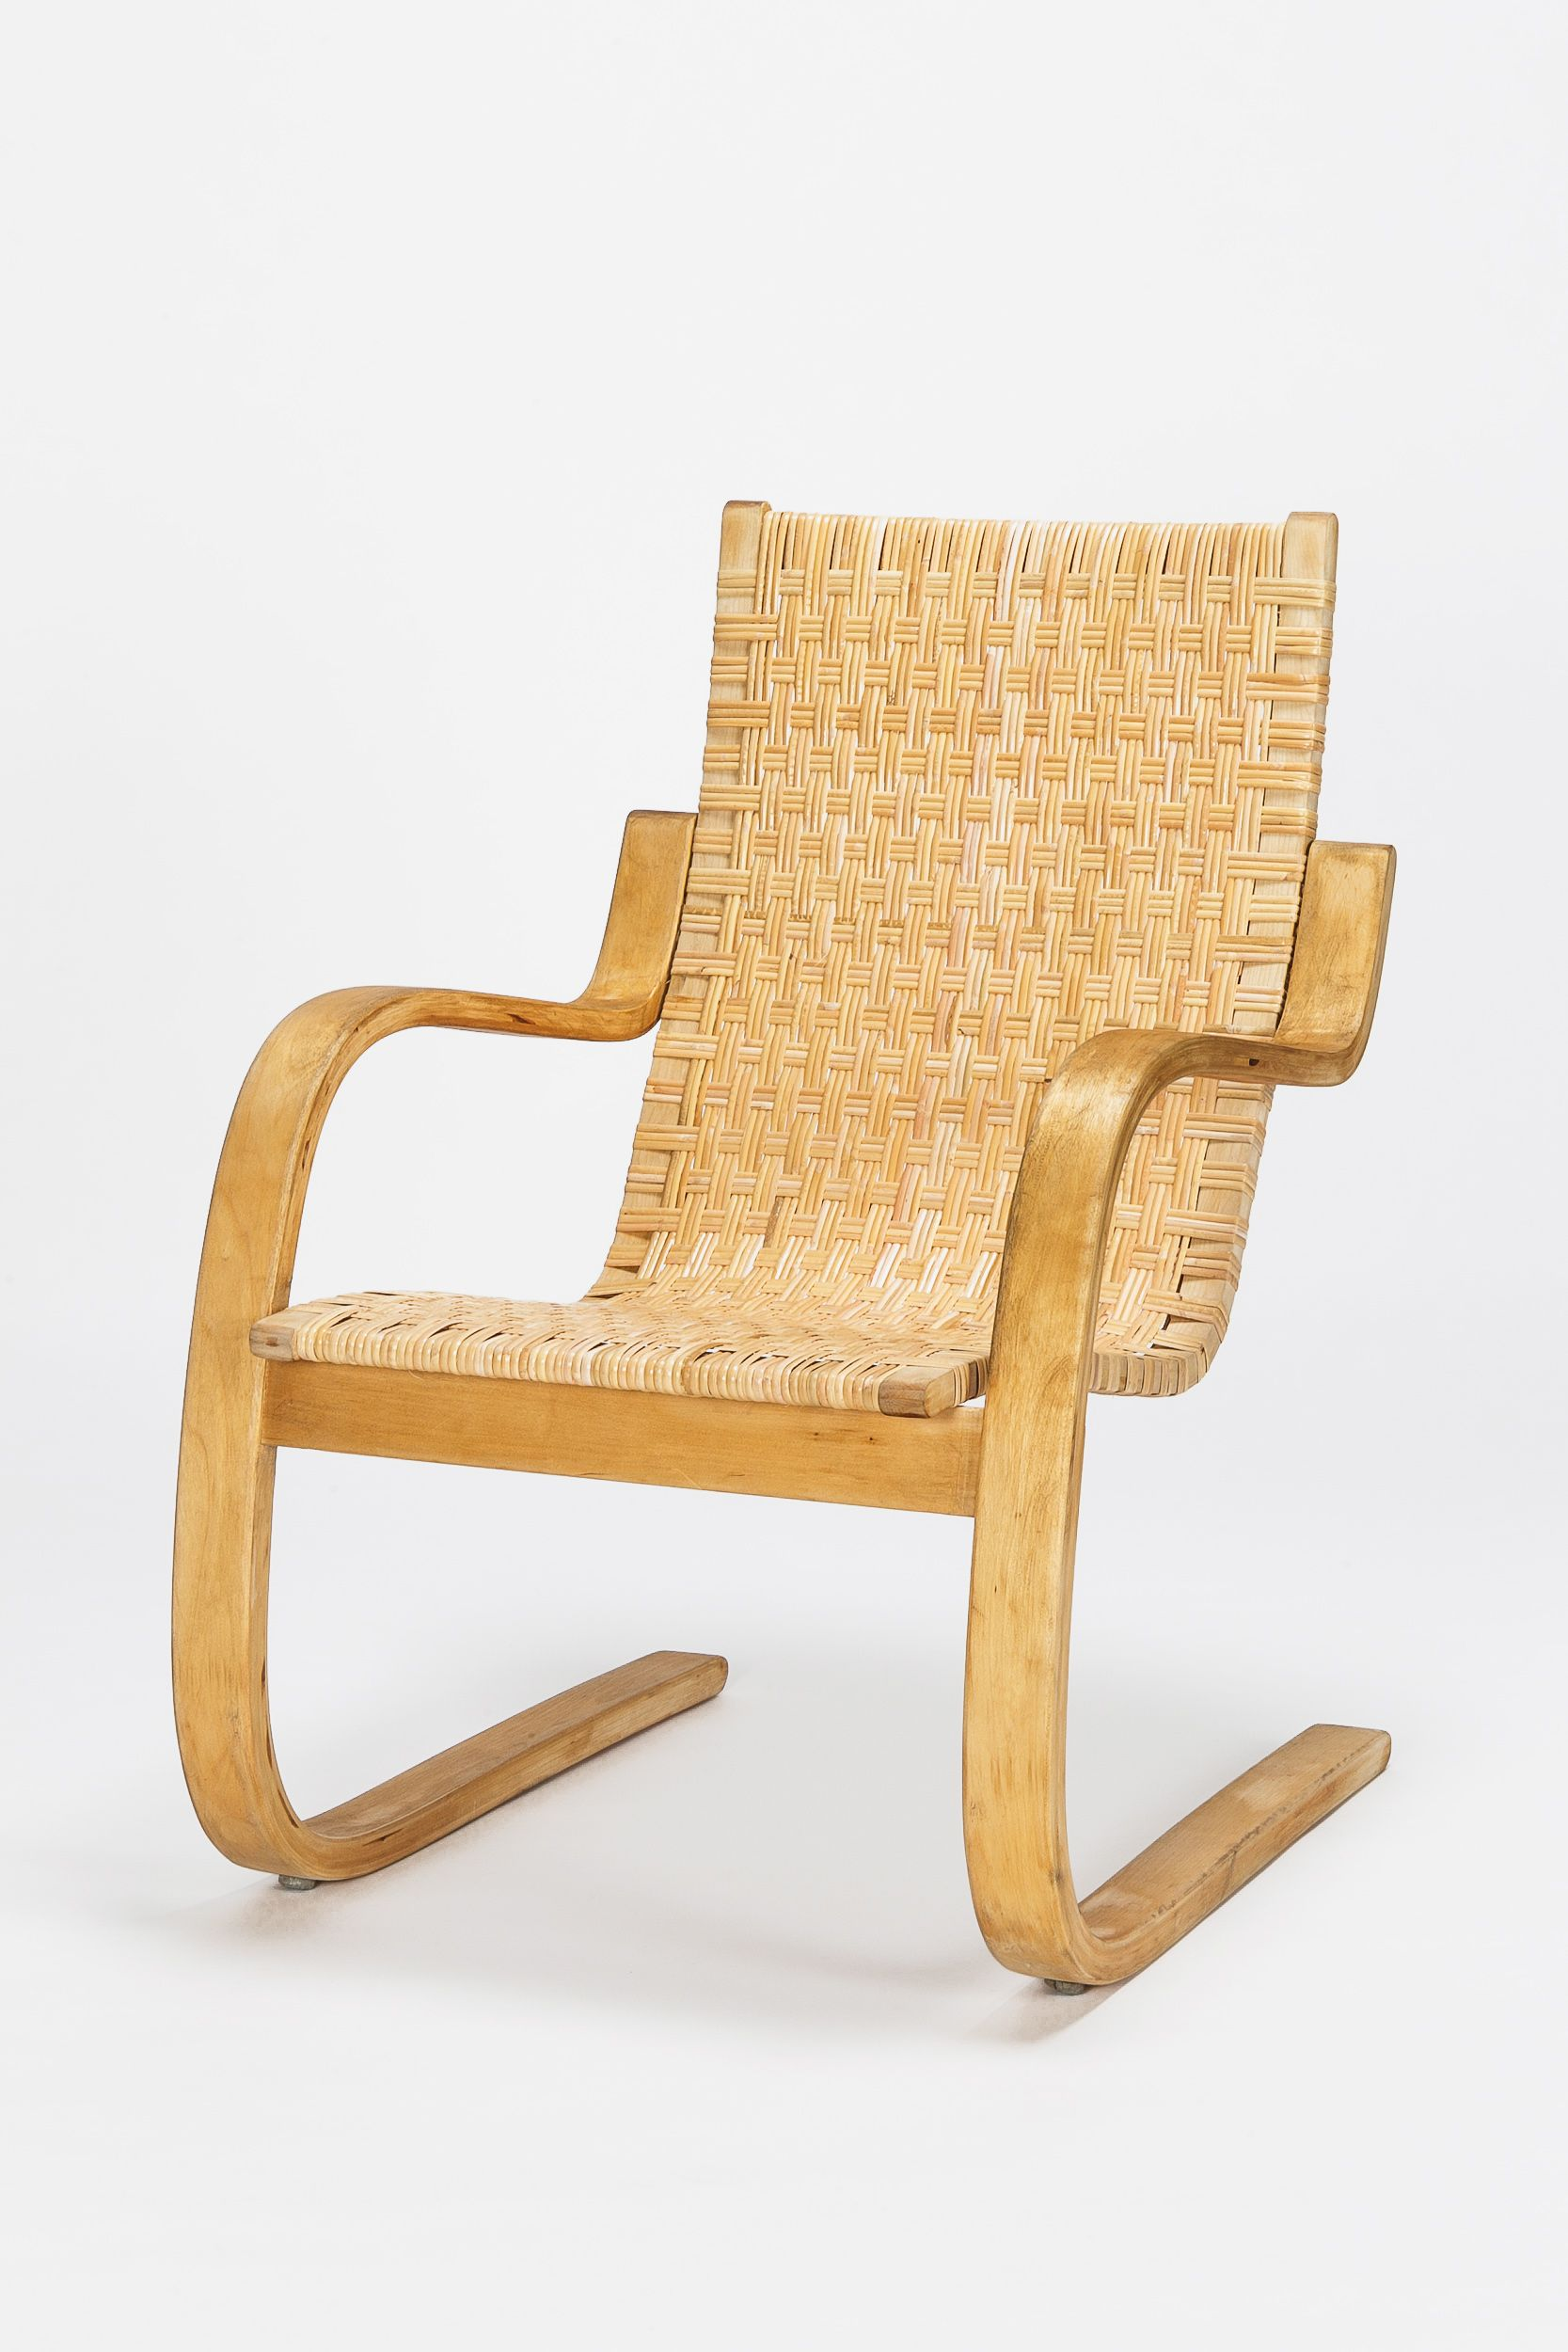 Amazing Alvar Aalto Lounge Chair 406 Birch 60S Furniture Pabps2019 Chair Design Images Pabps2019Com